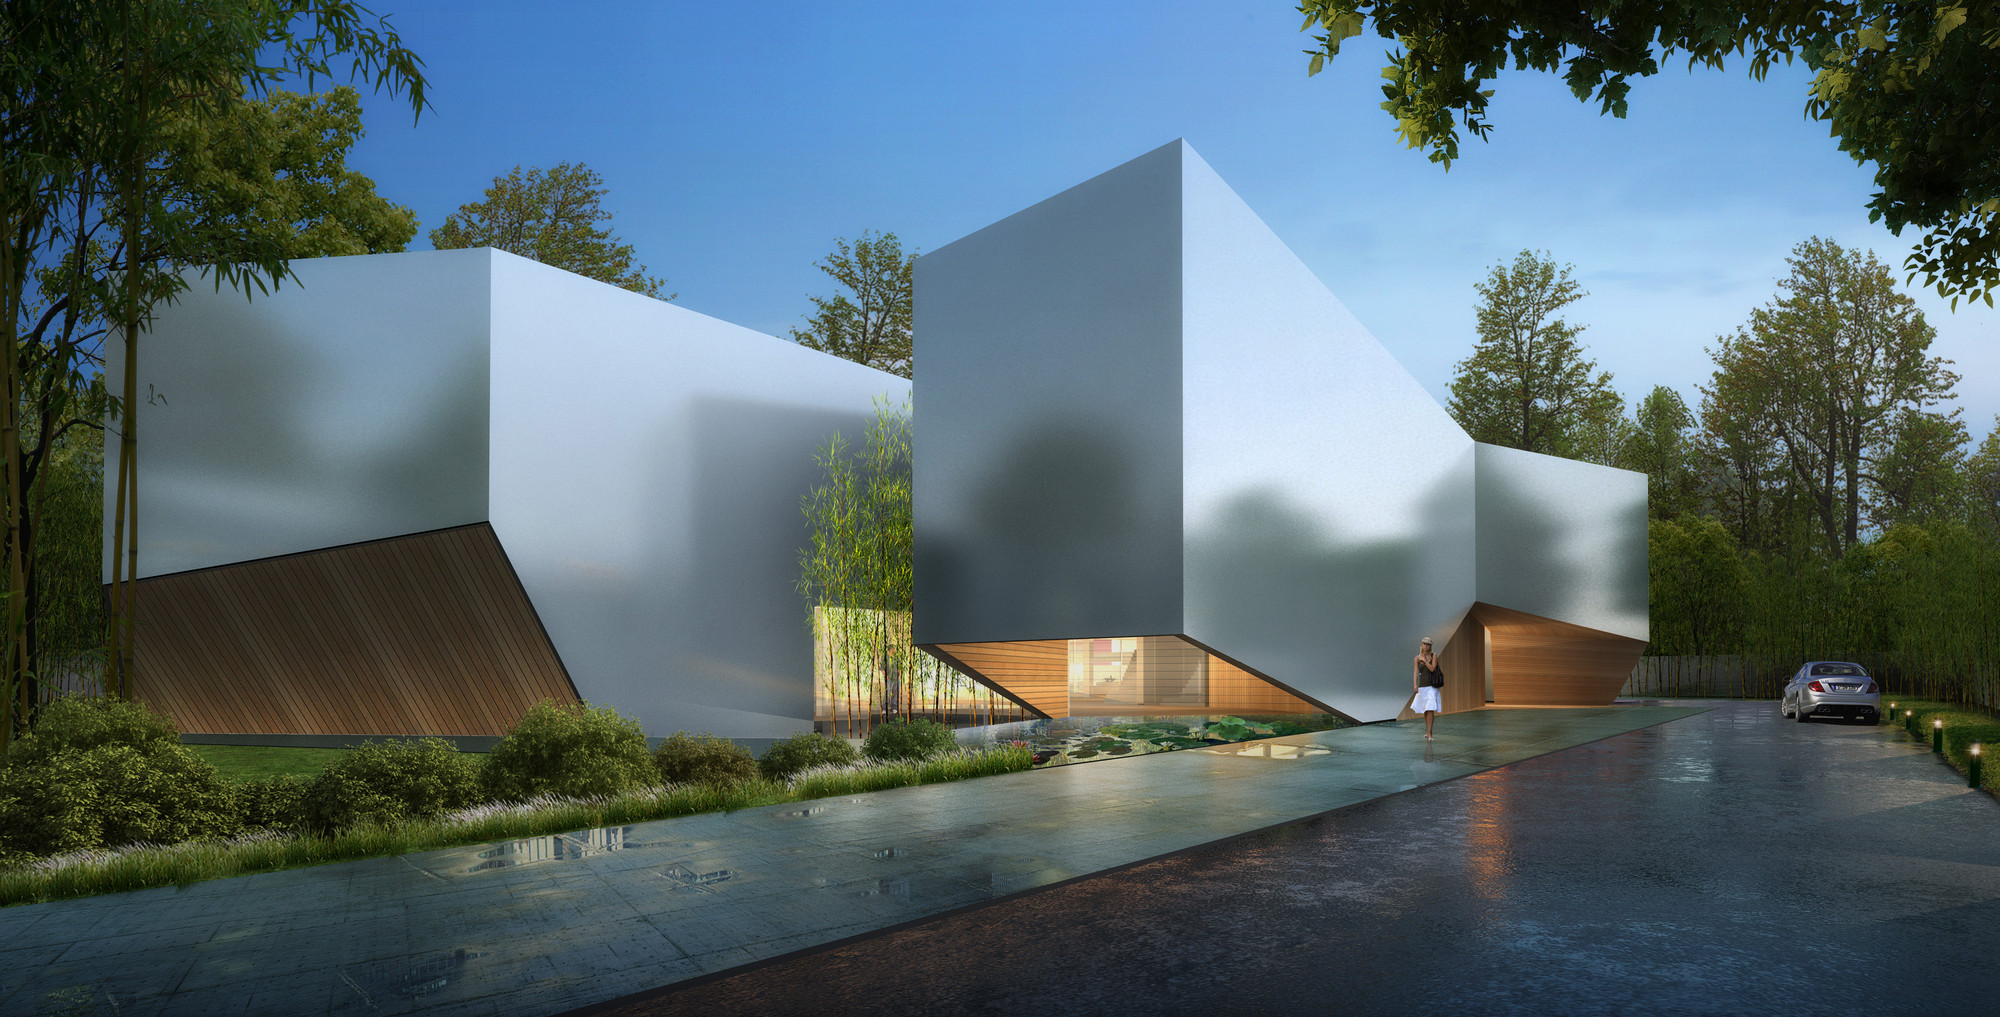 Shanghai flower garden square real time architecture for Garden architecture